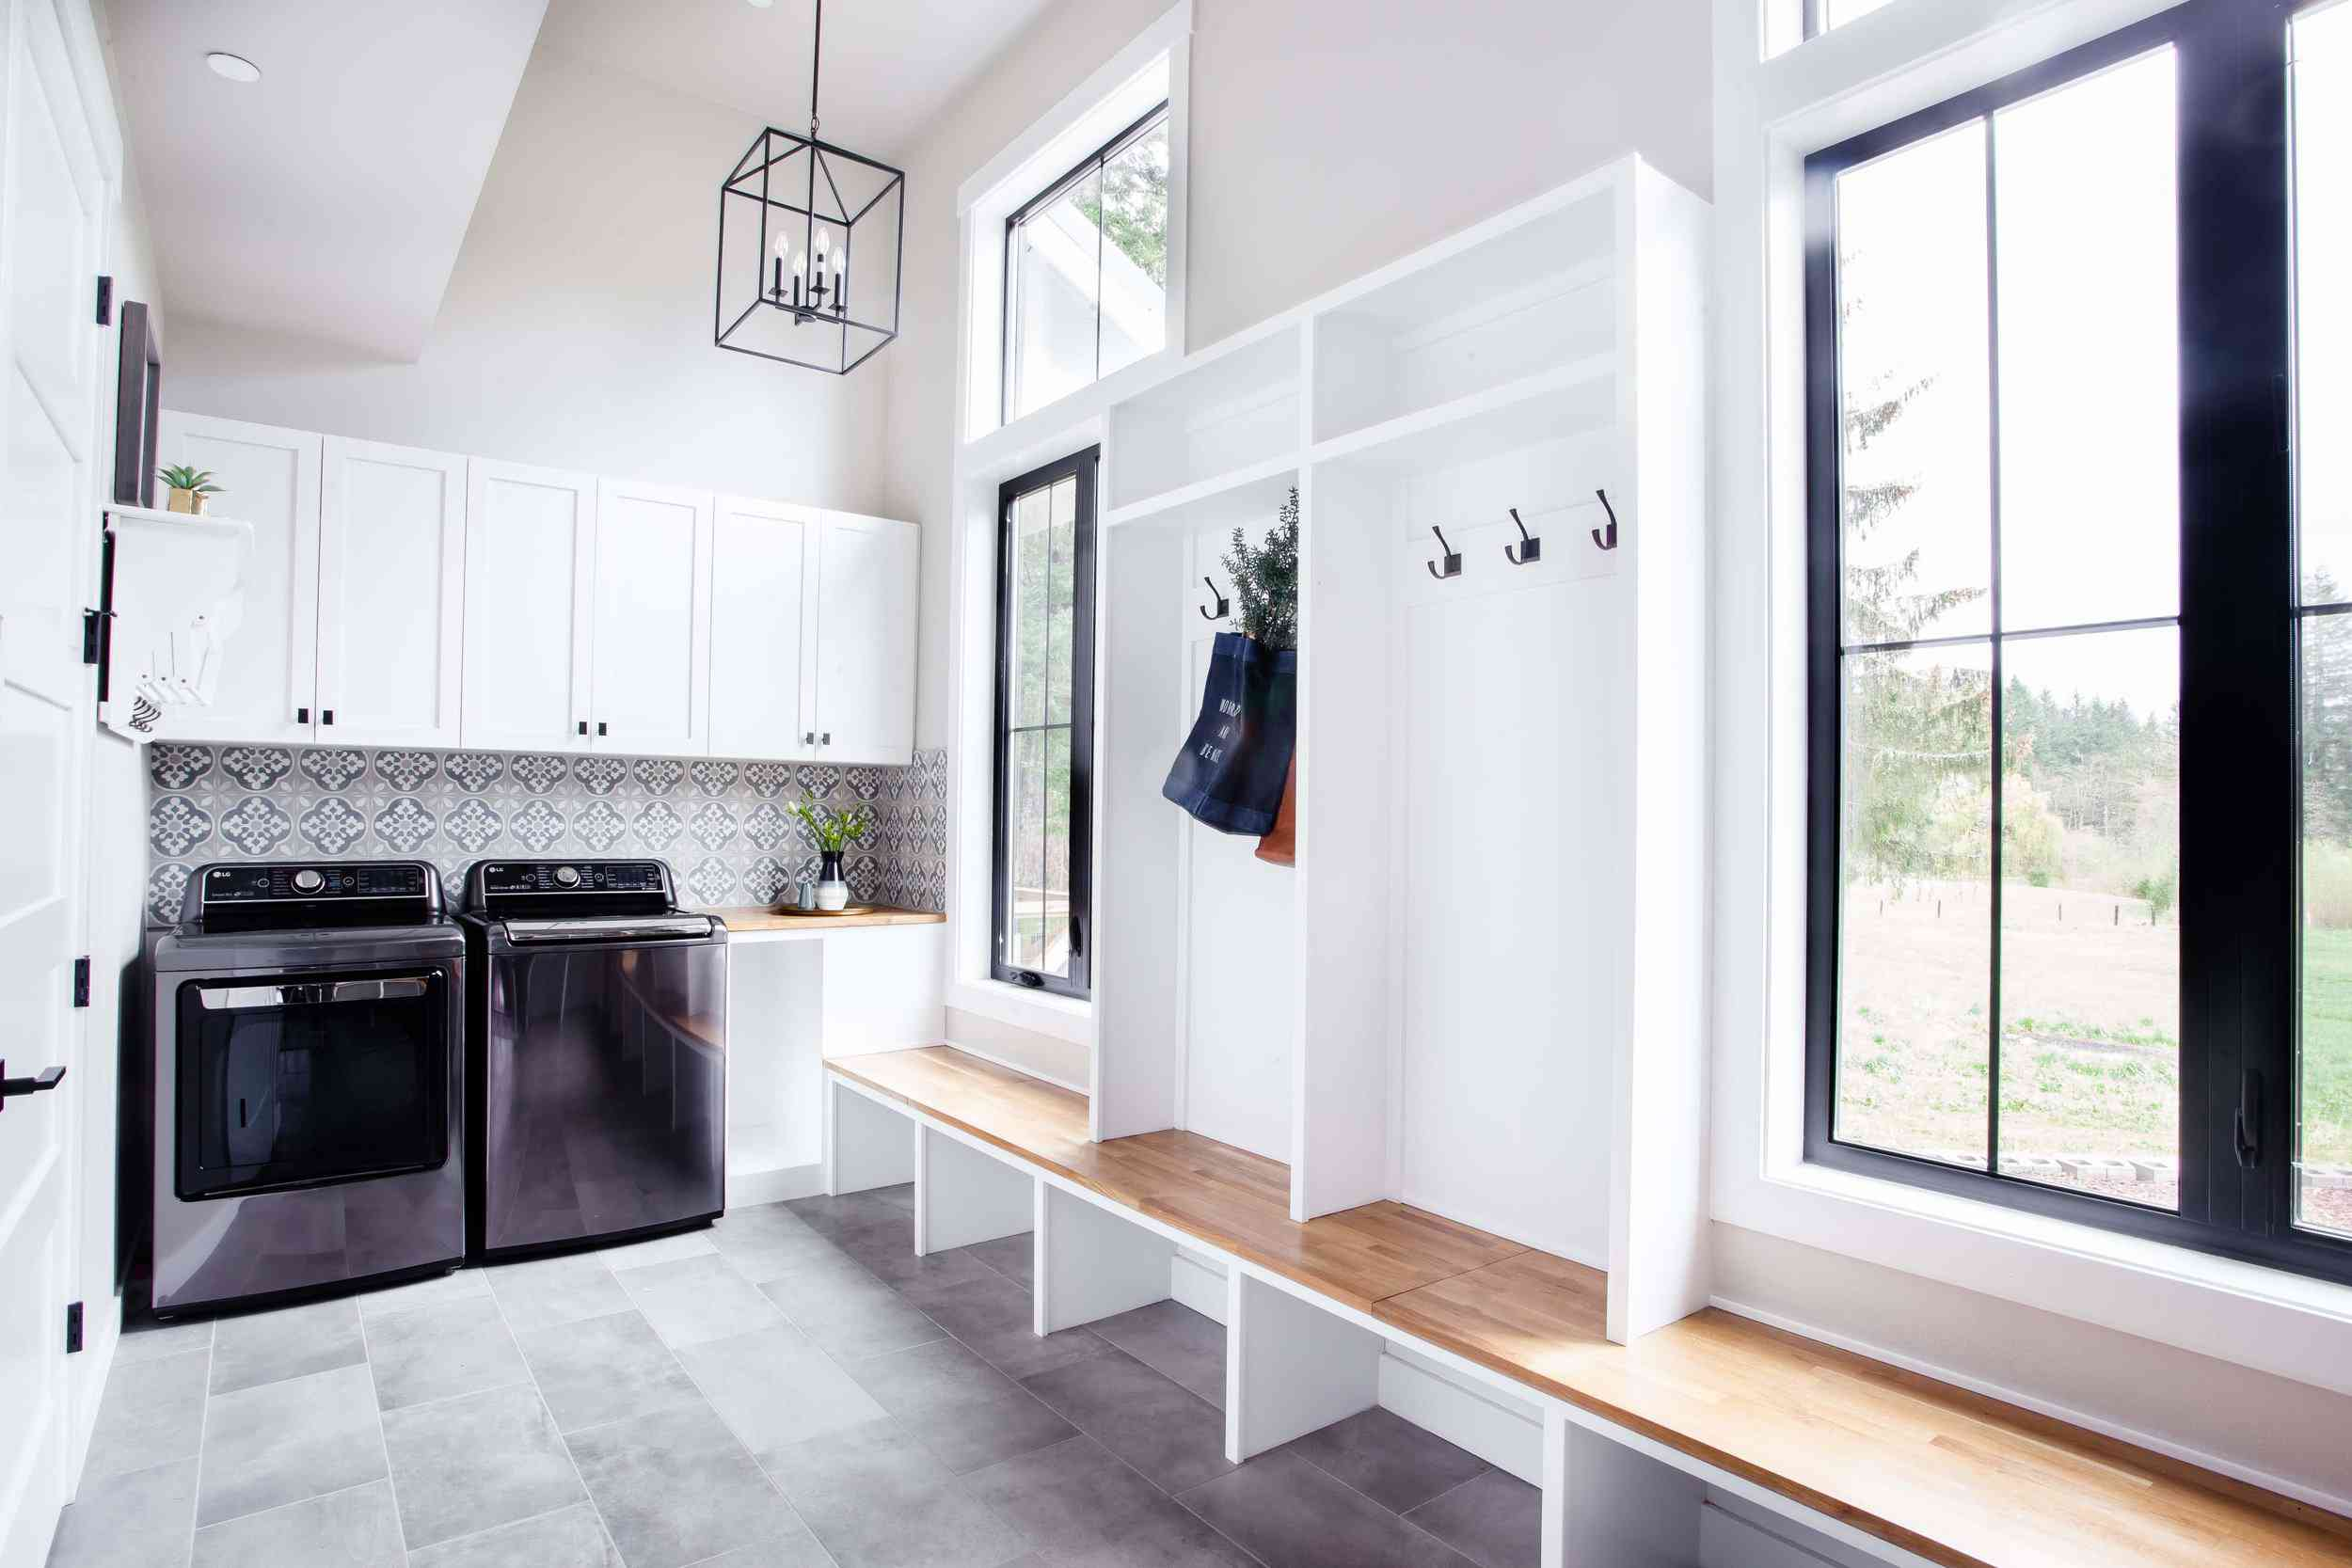 Mudroom and laundry room combined